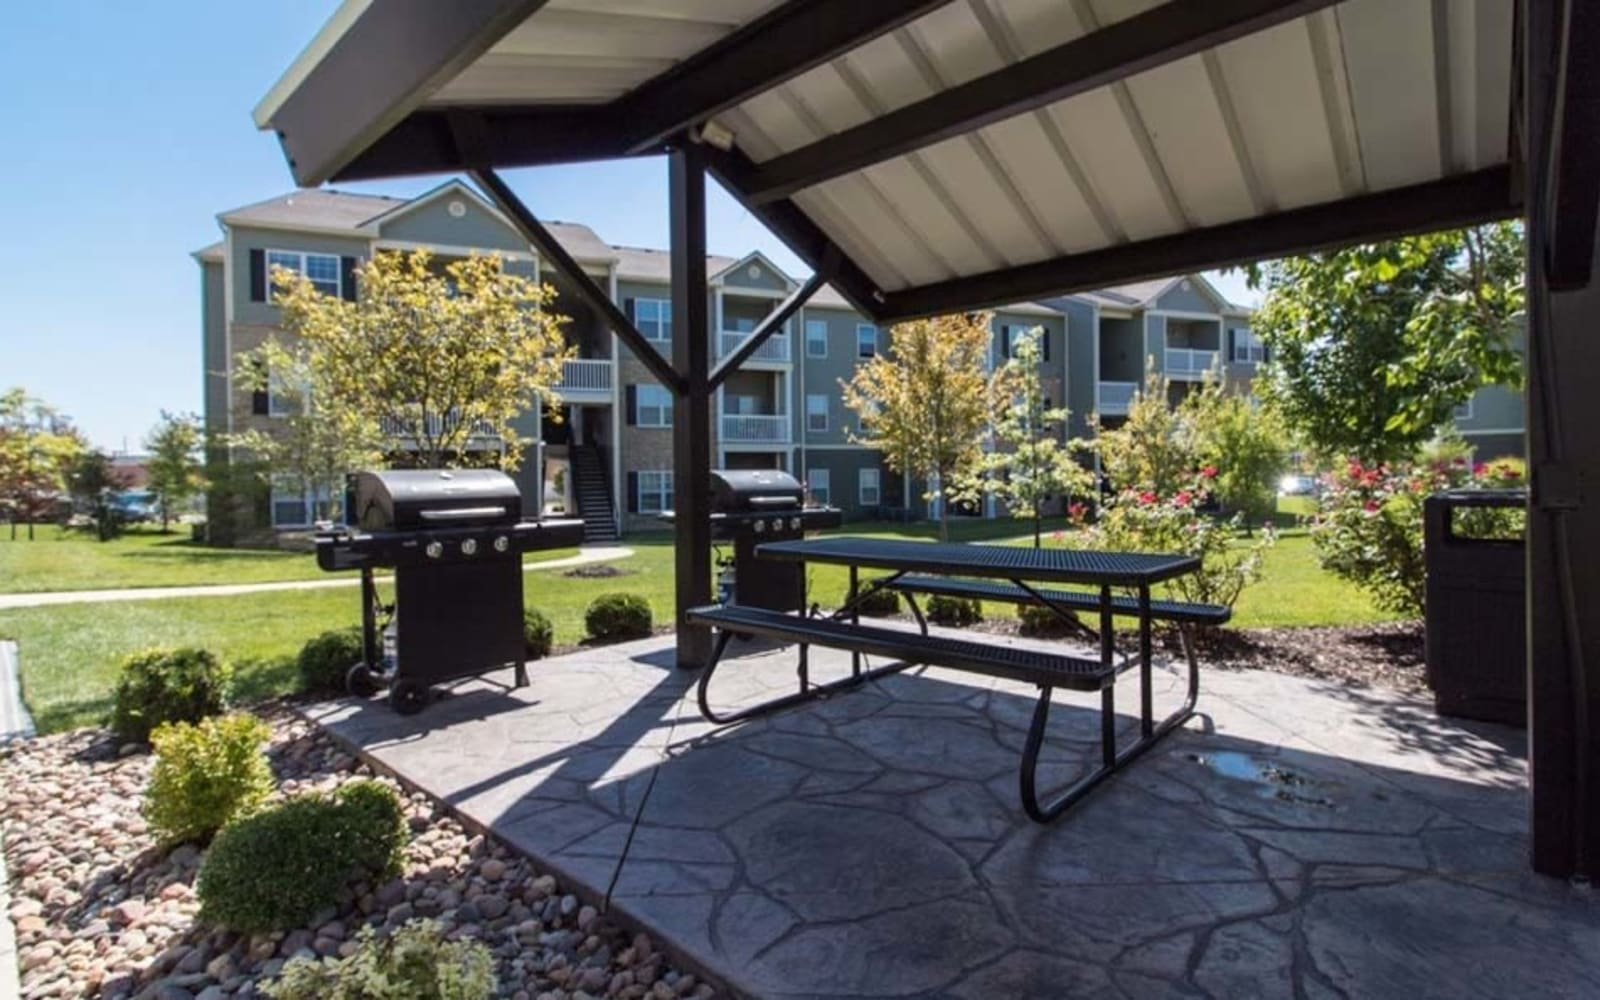 Outdoor seating and gas grills at Aventura at Richmond in Saint Peters, Missouri.